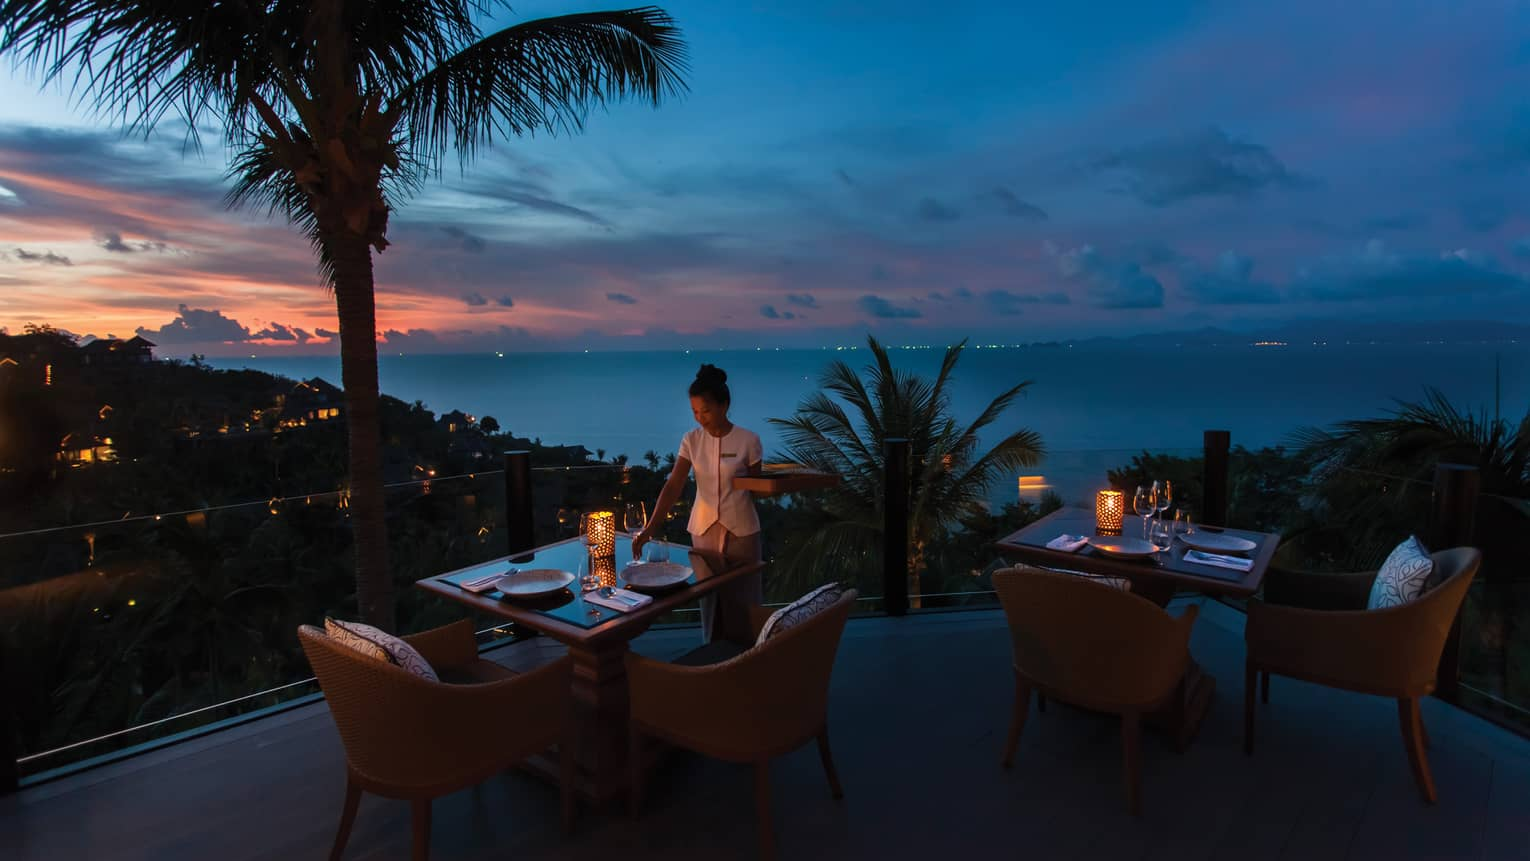 Waitstaff sets the table on outdoor terrace at Koh Thai Kitchen in Koh Samui, view of palm trees and Gulf of Thailand